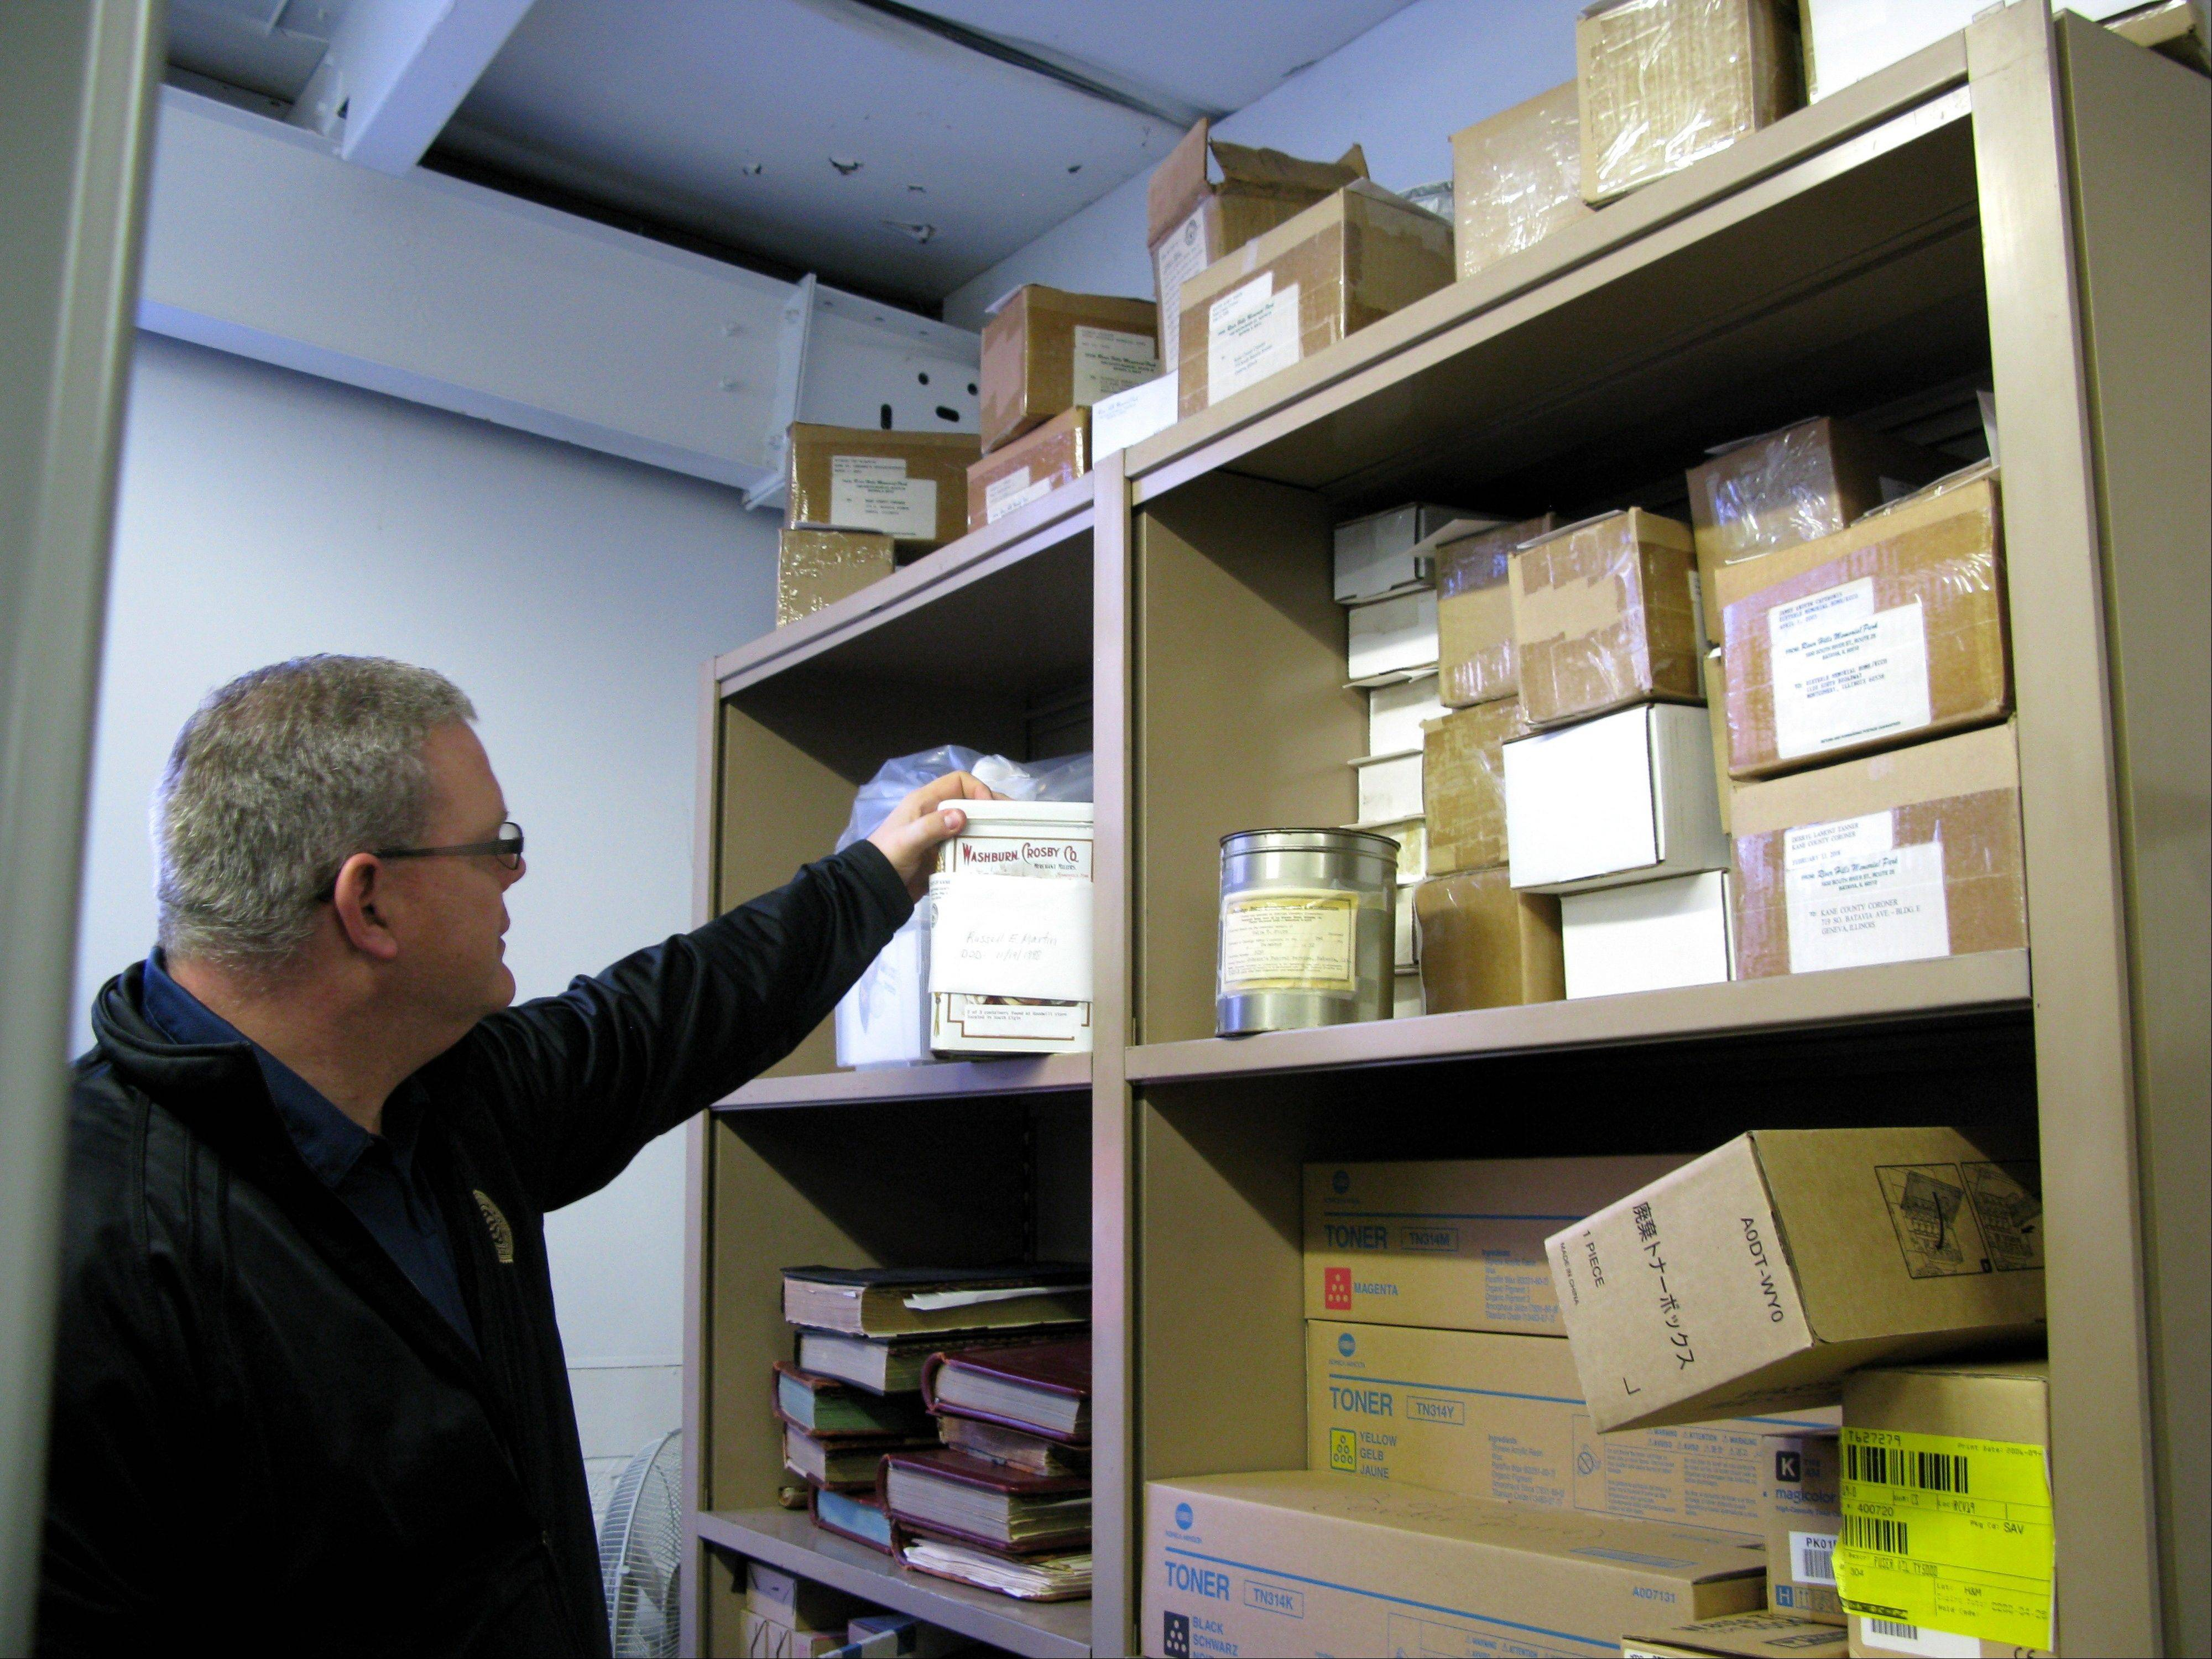 Kane County Coroner Rob Russell shows where some cremains were being stored in his office.